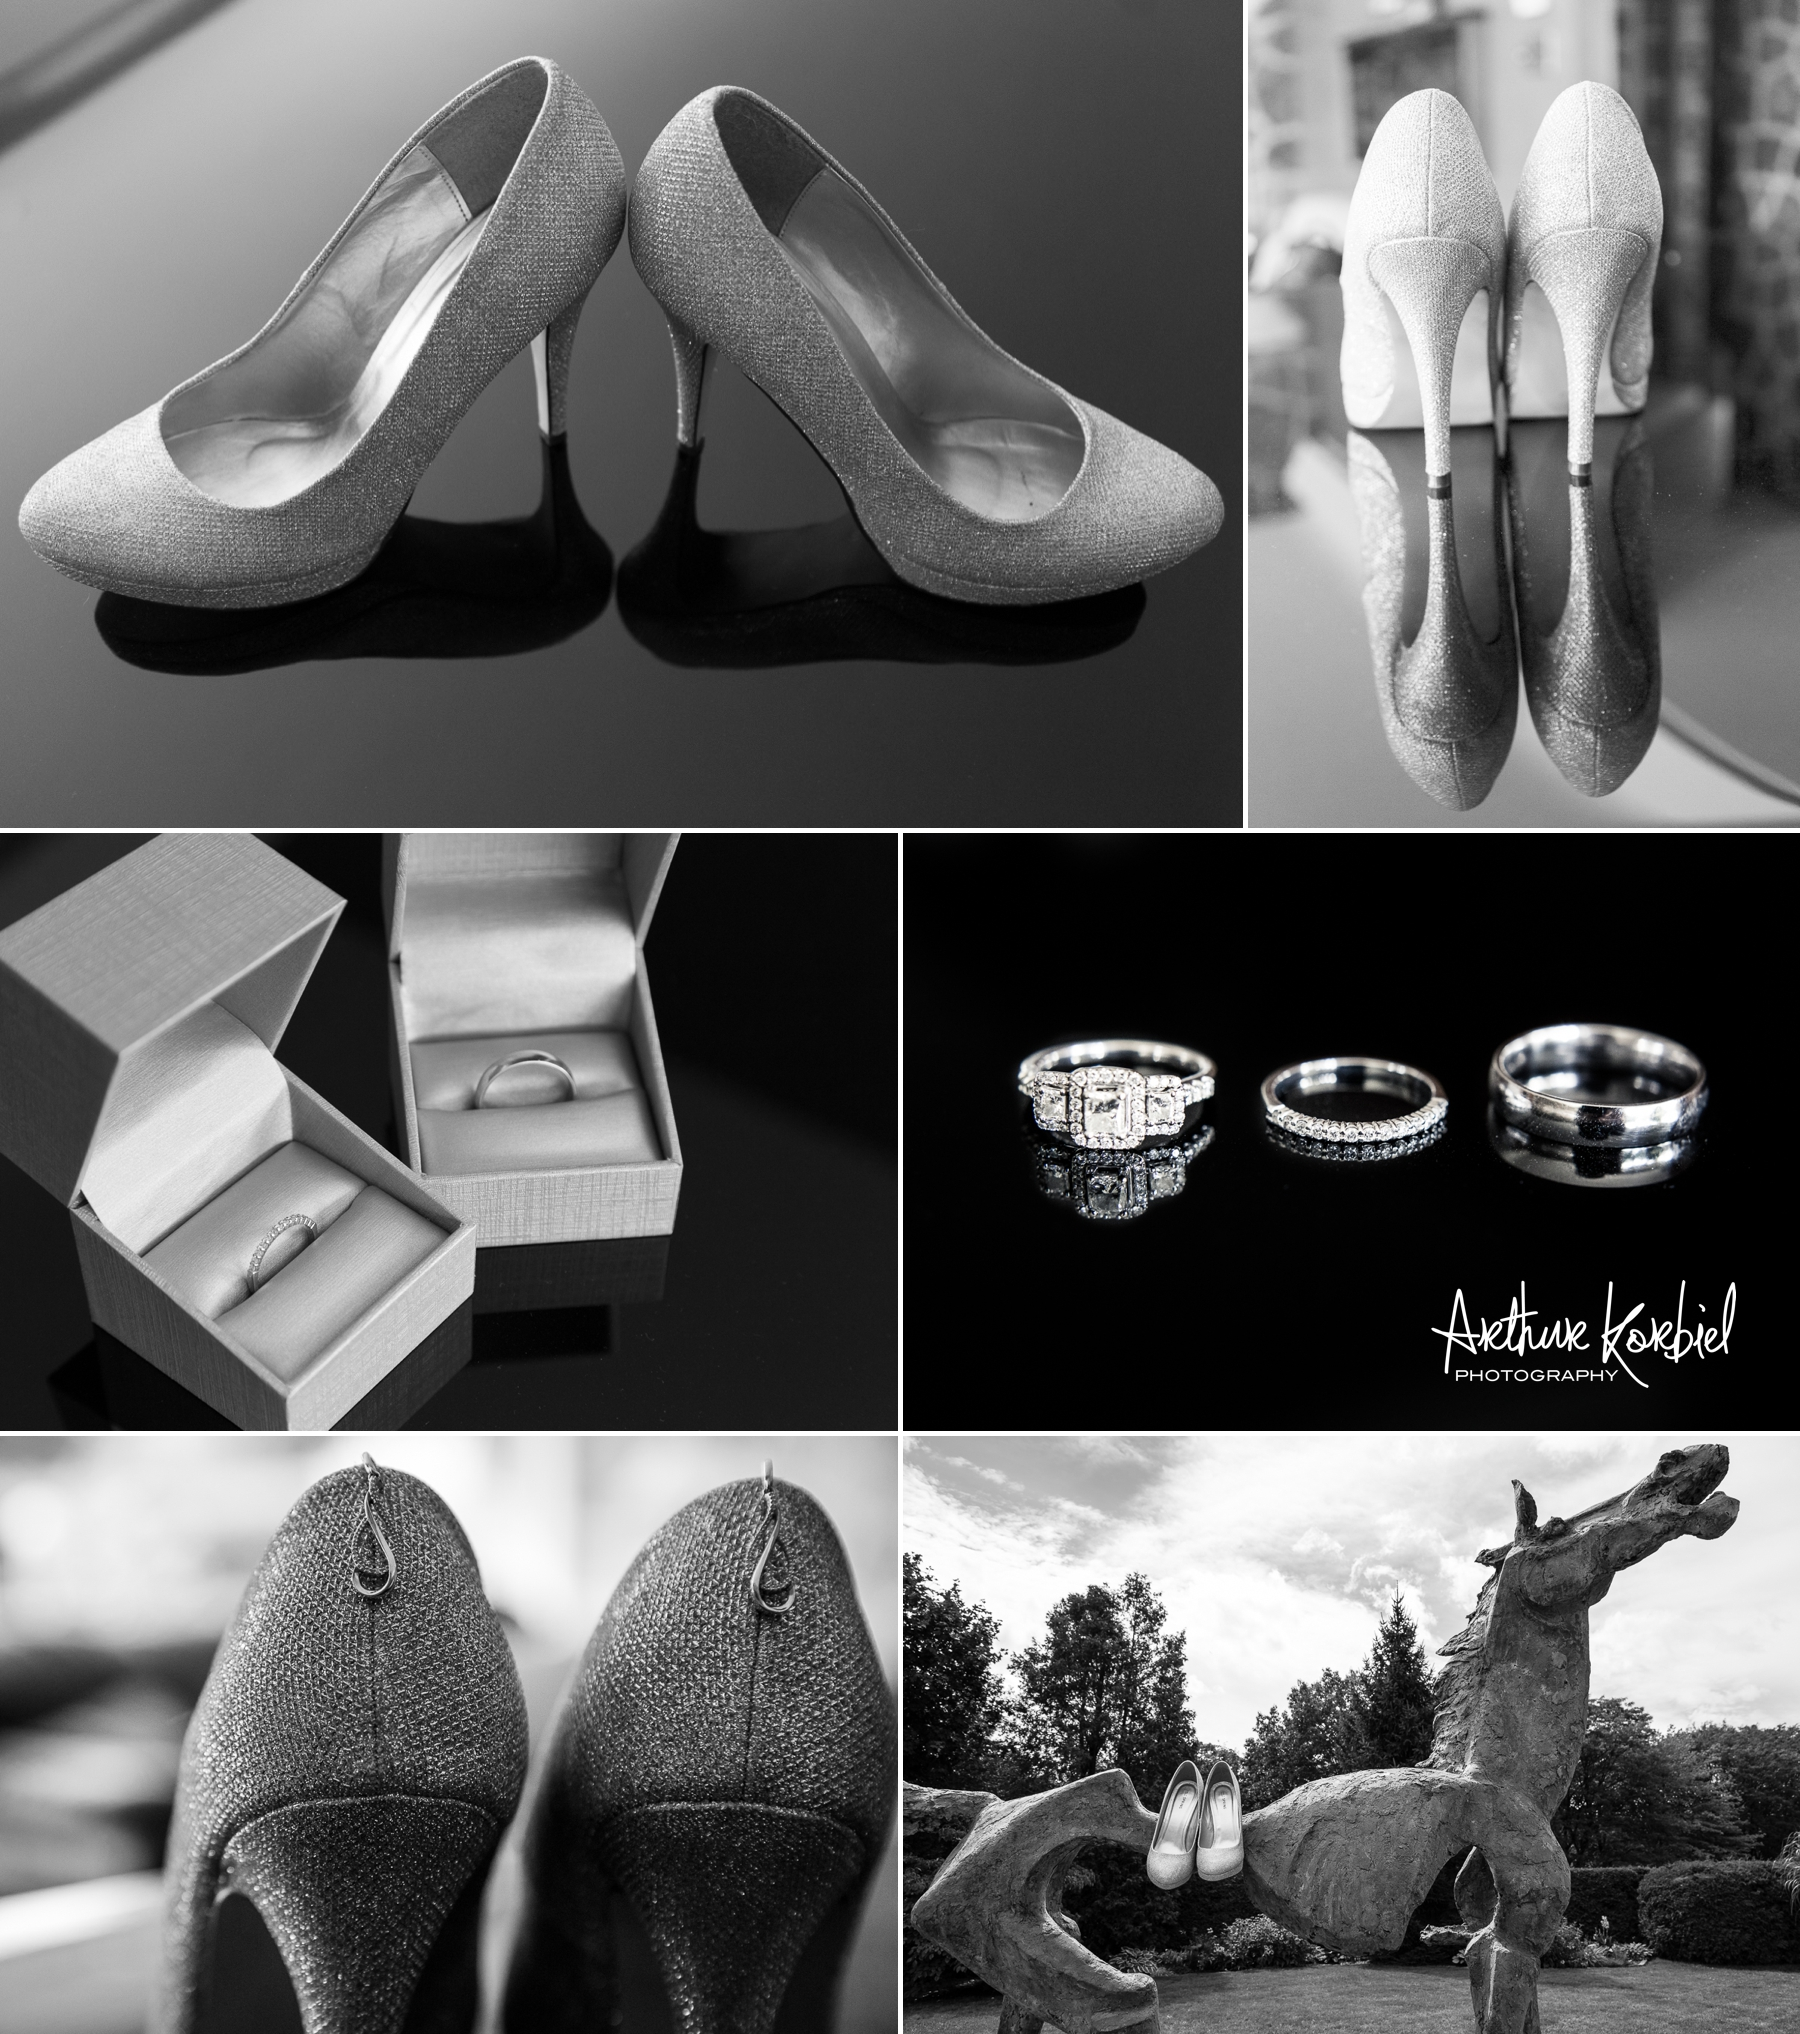 Arthur Korbiel Photography - London Wedding Photographer - Stone Willow Inn - St Marys & Stratford_011.jpg